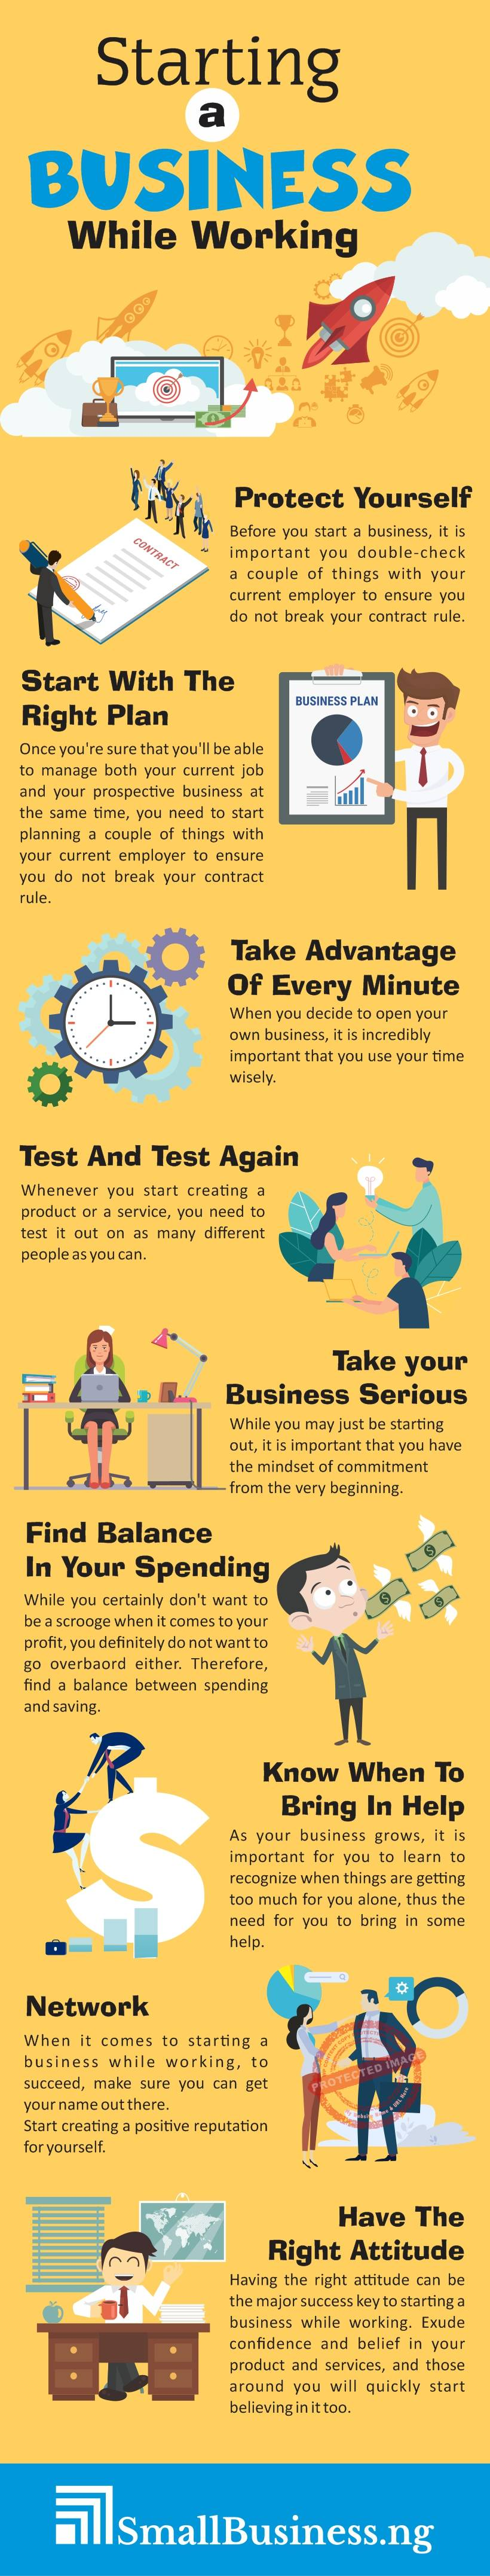 Starting A Business While Working infographic